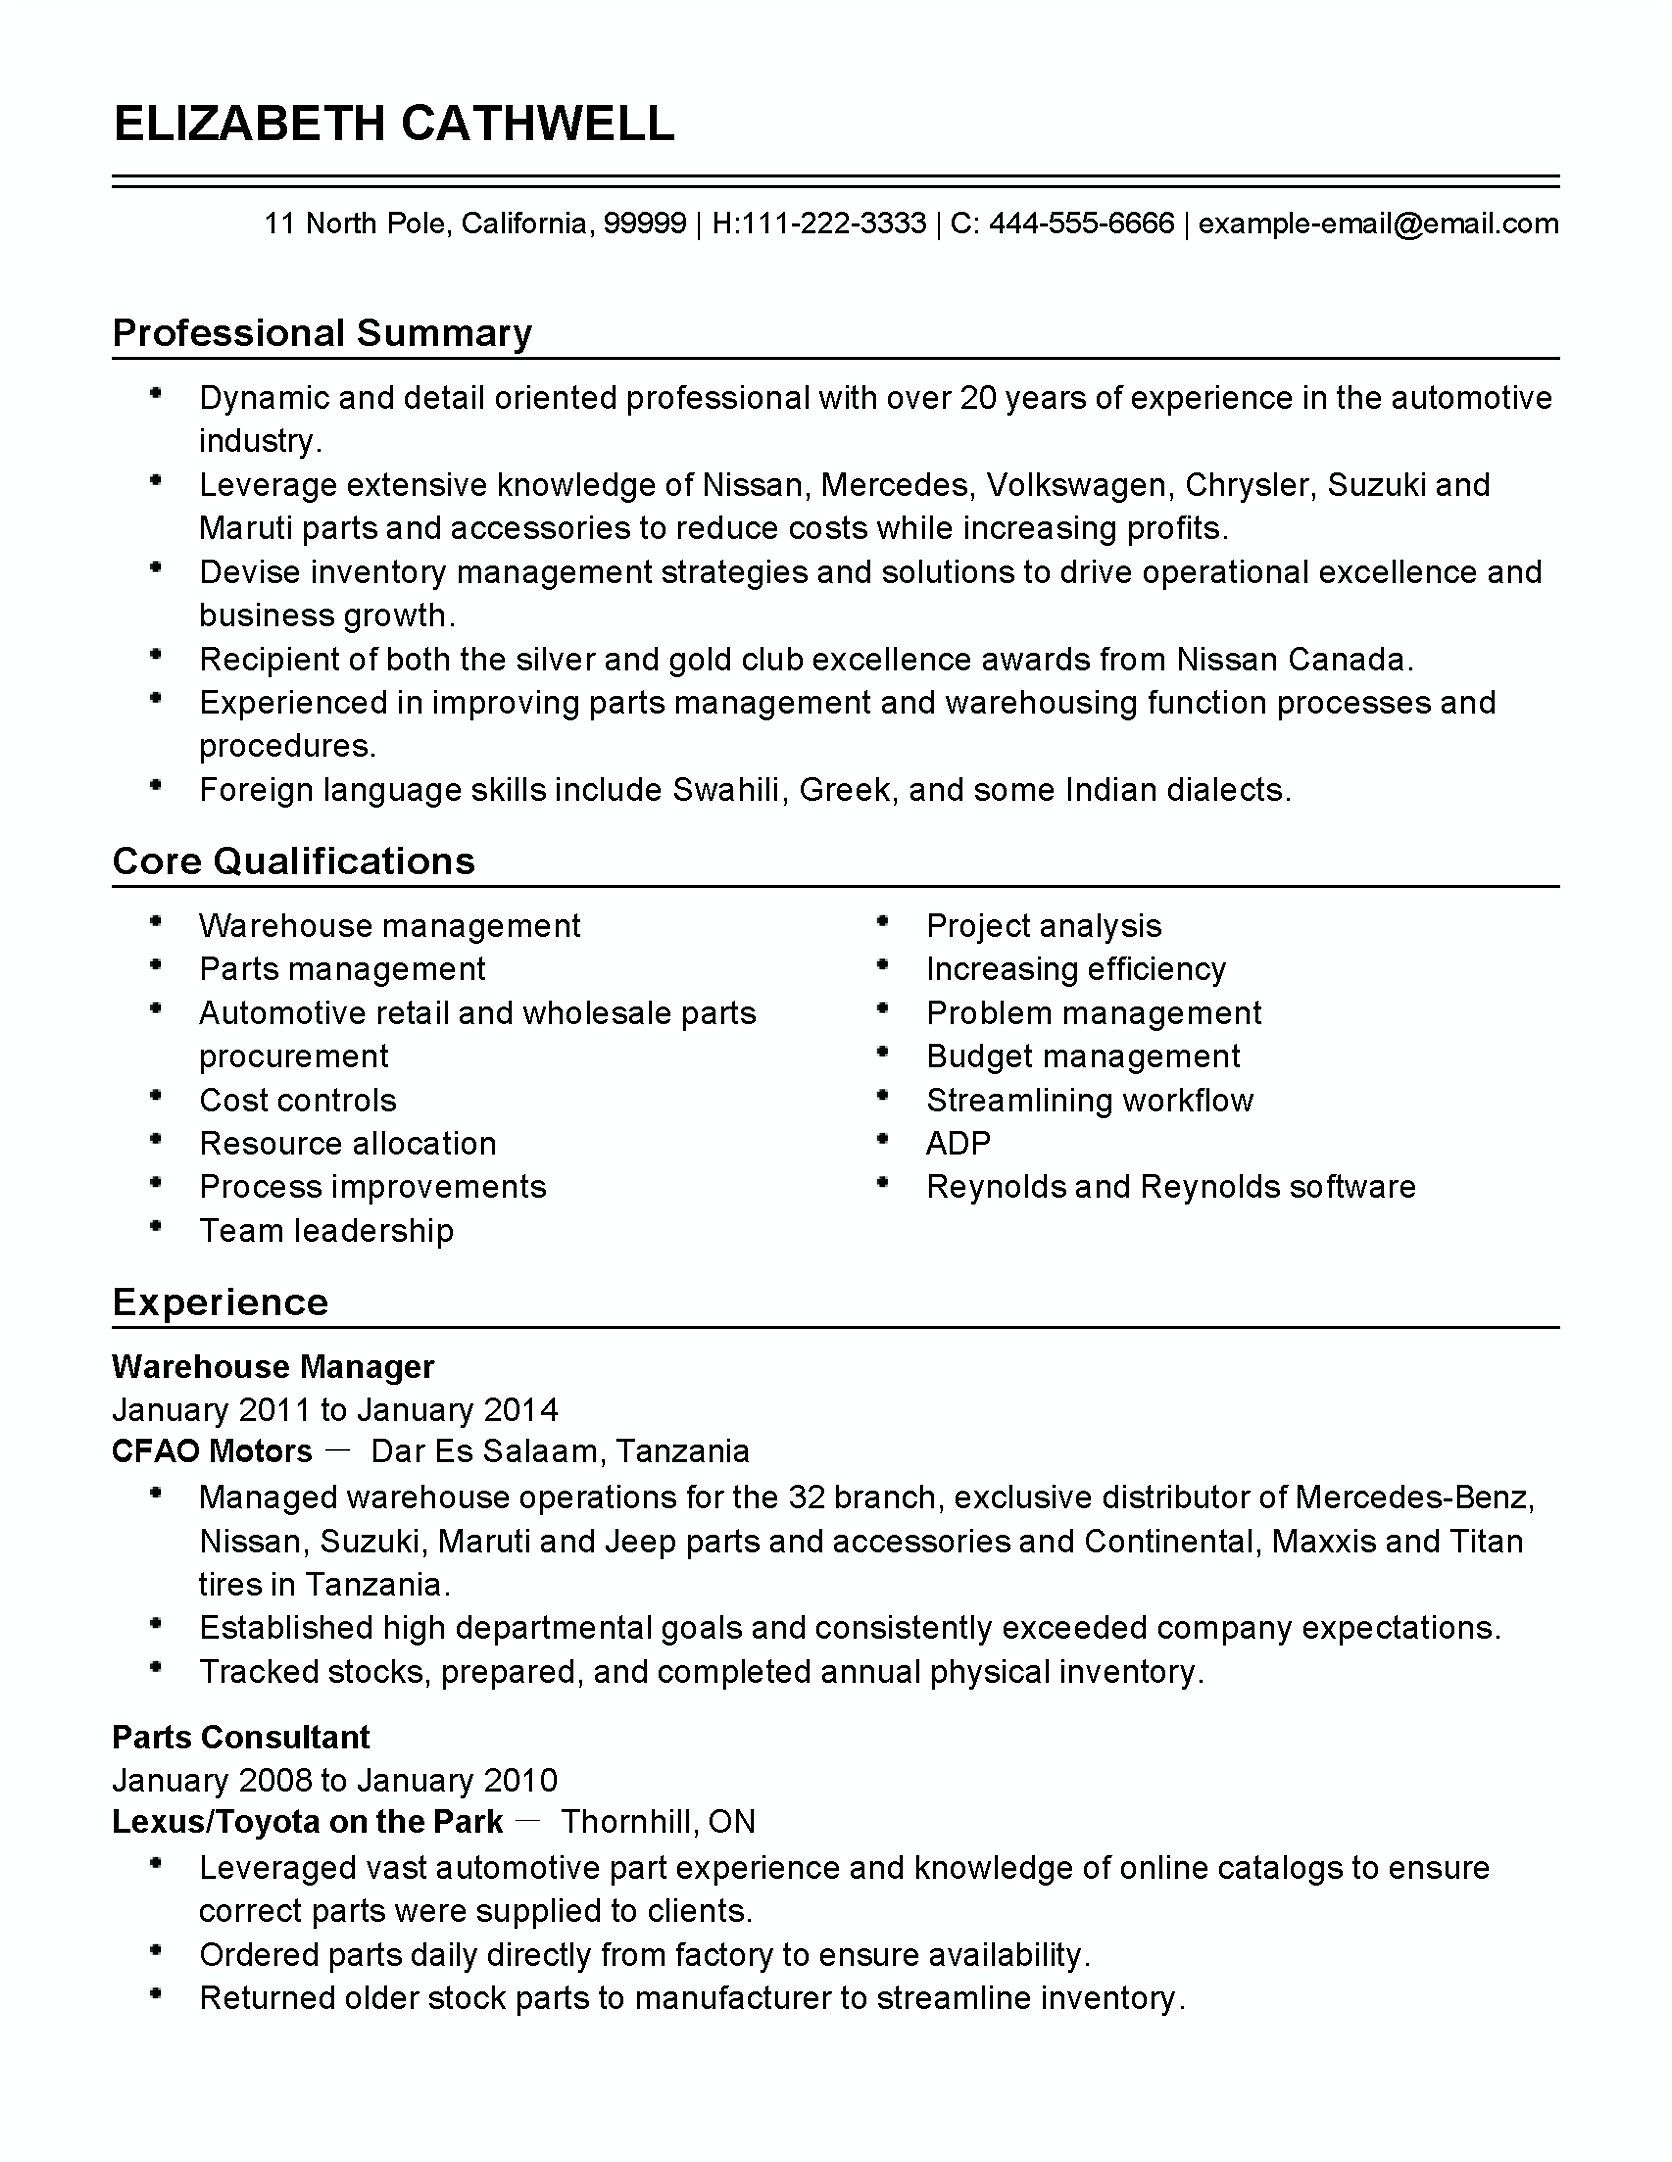 Inventory Management Resume Automotive Inventory Manager   To Apply Inventory Manager You